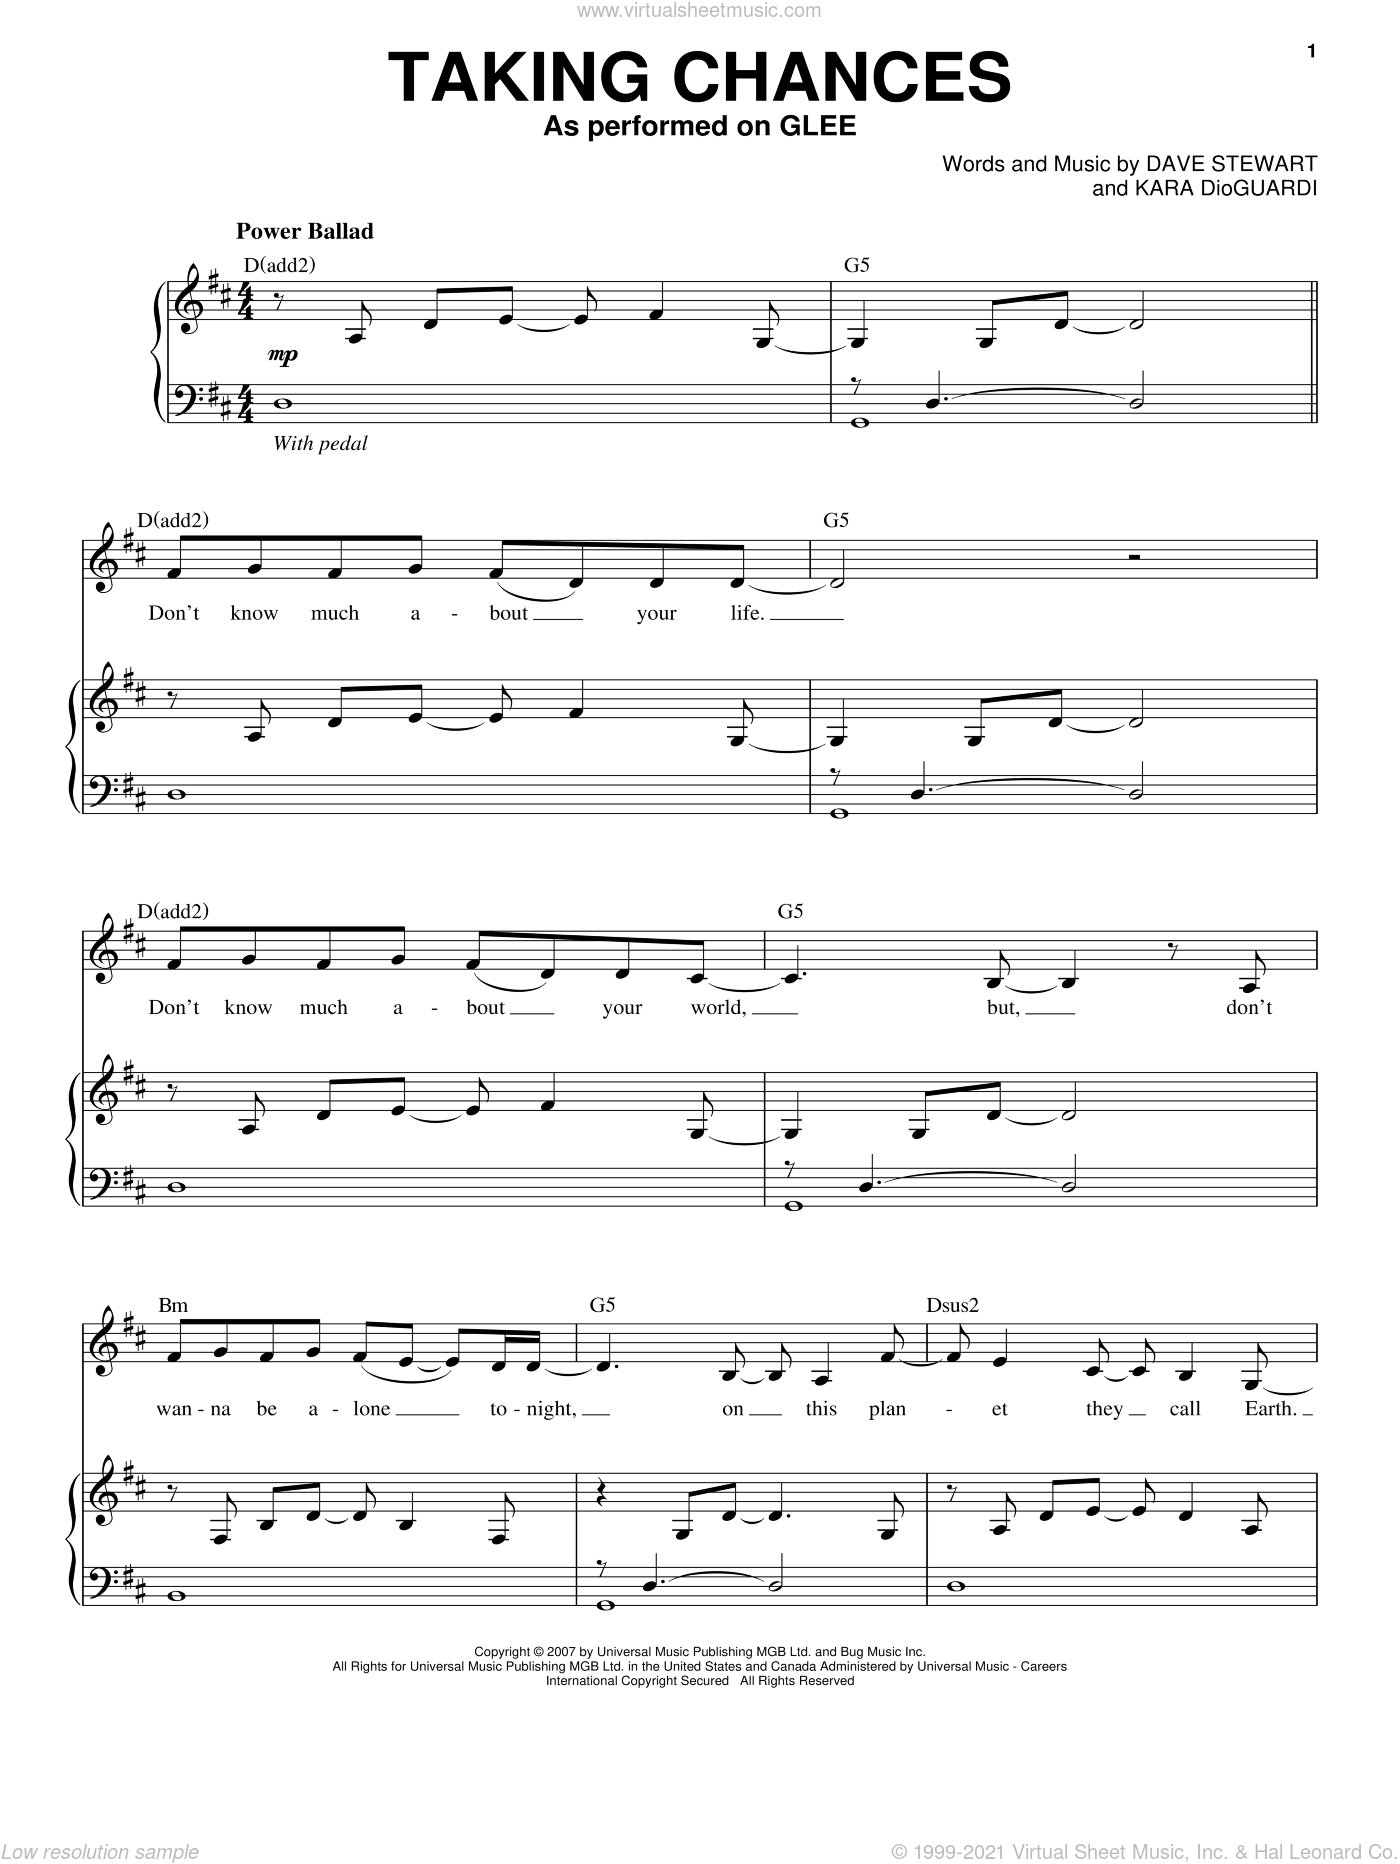 Taking Chances sheet music for voice and piano by Glee Cast, Celine Dion, Miscellaneous, Dave Stewart and Kara DioGuardi, intermediate skill level